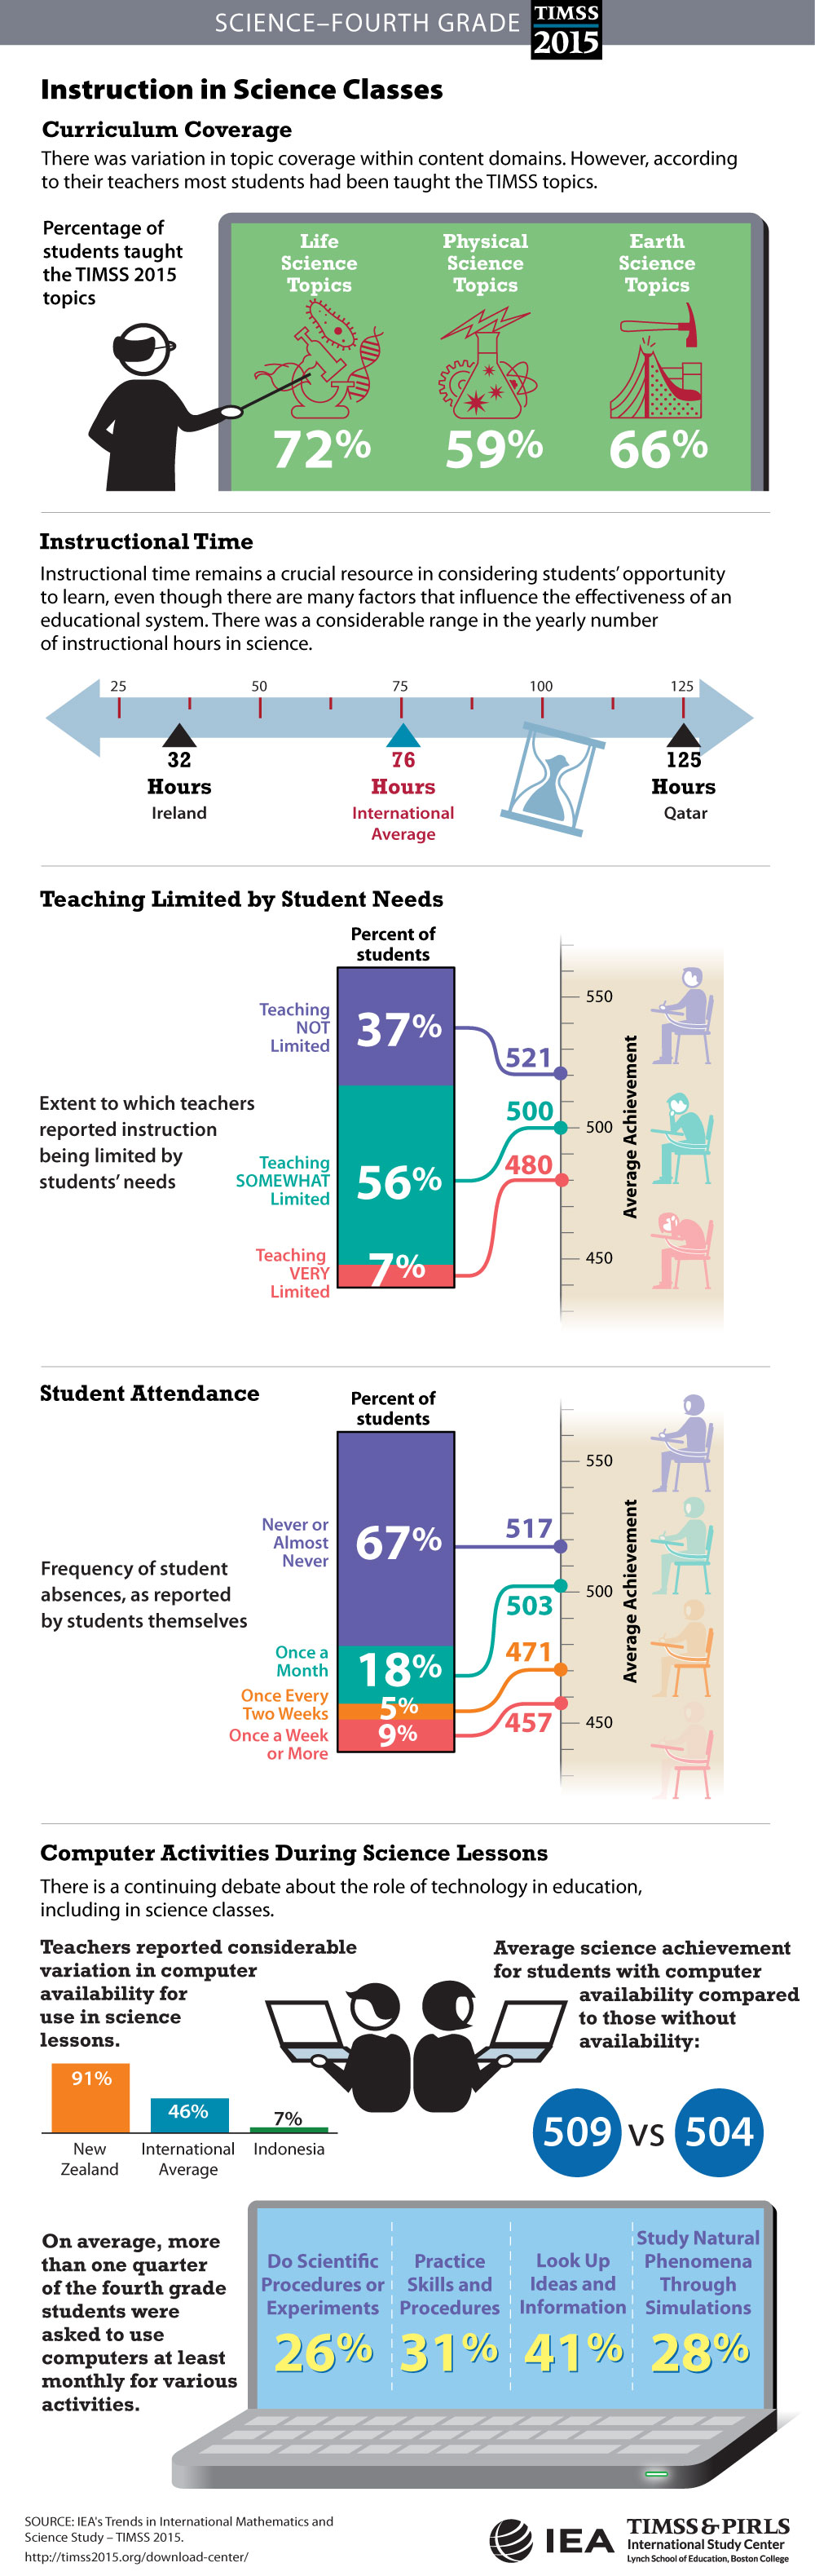 Classroom Instruction (G4) Infographic